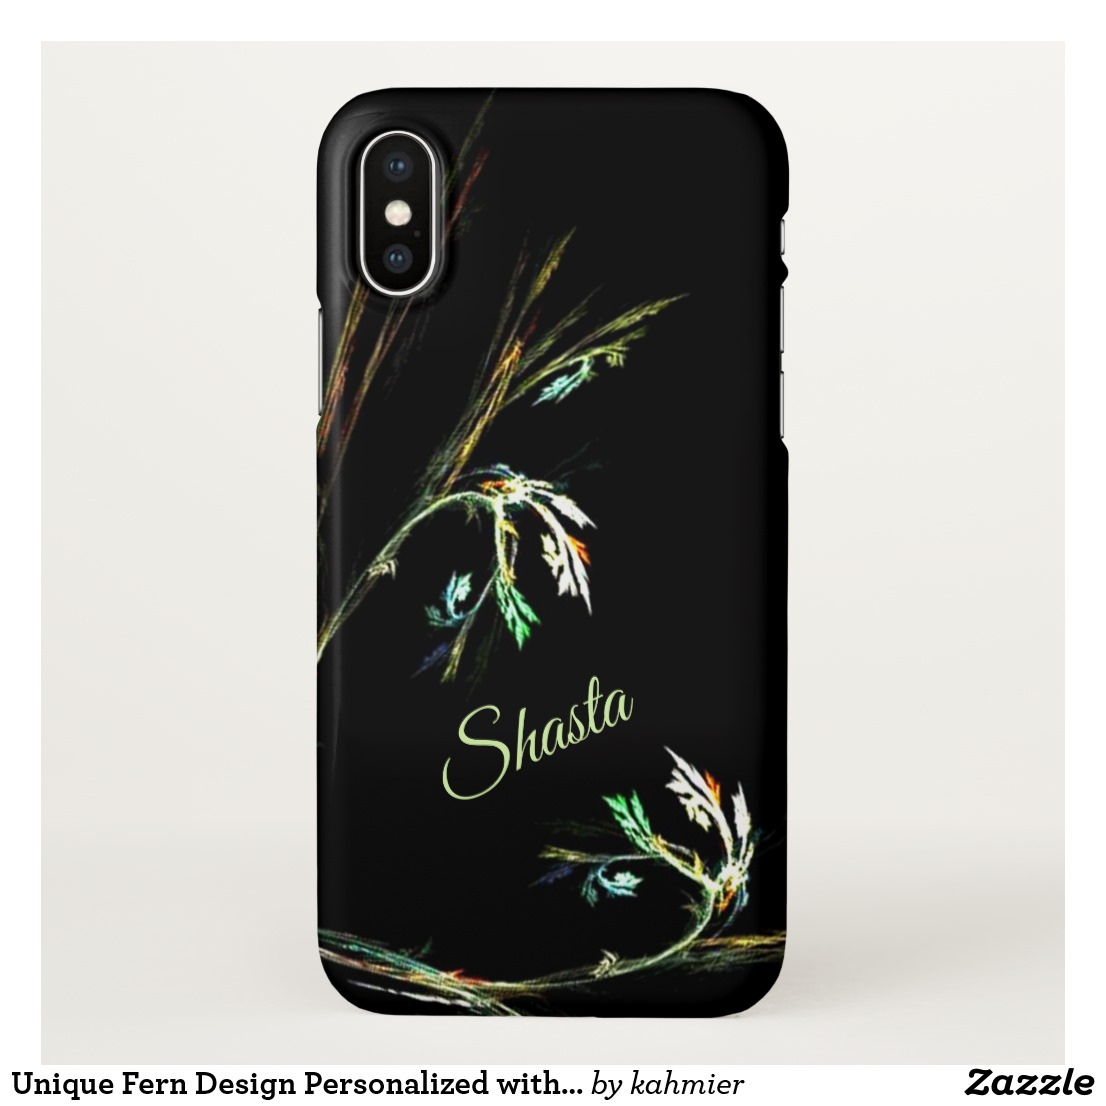 Unique Fern Design Personalized with Name iPhone Case